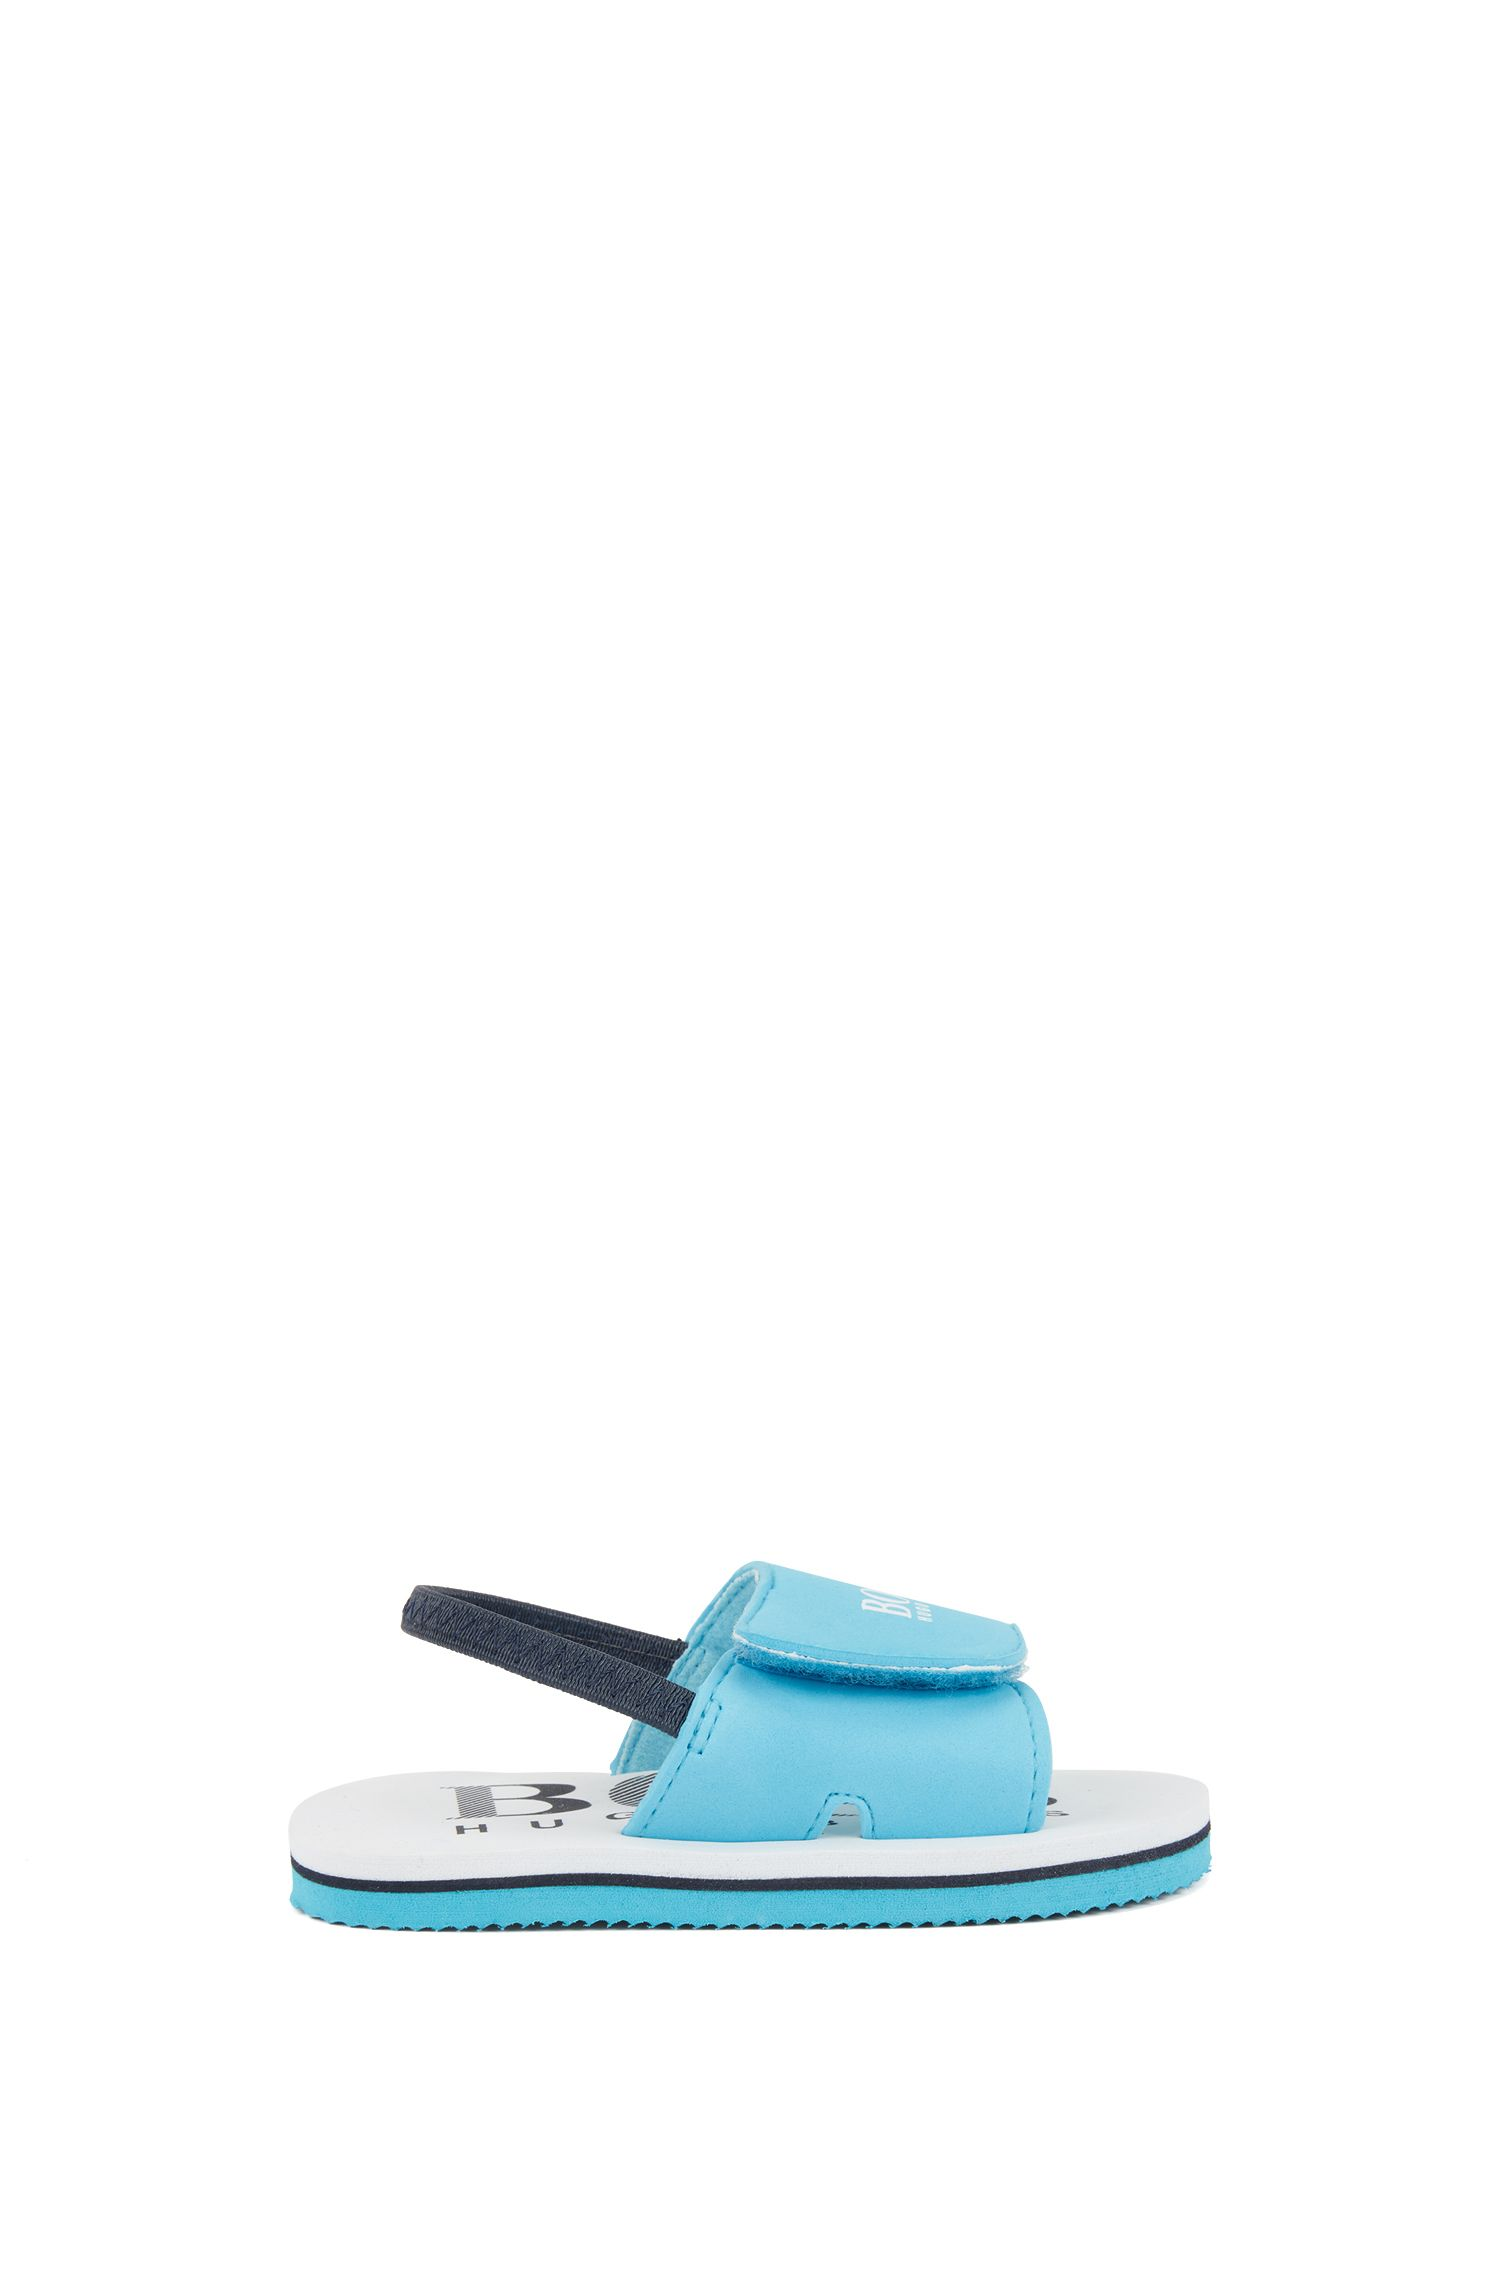 Kids' logo-print sandals with touch fastening